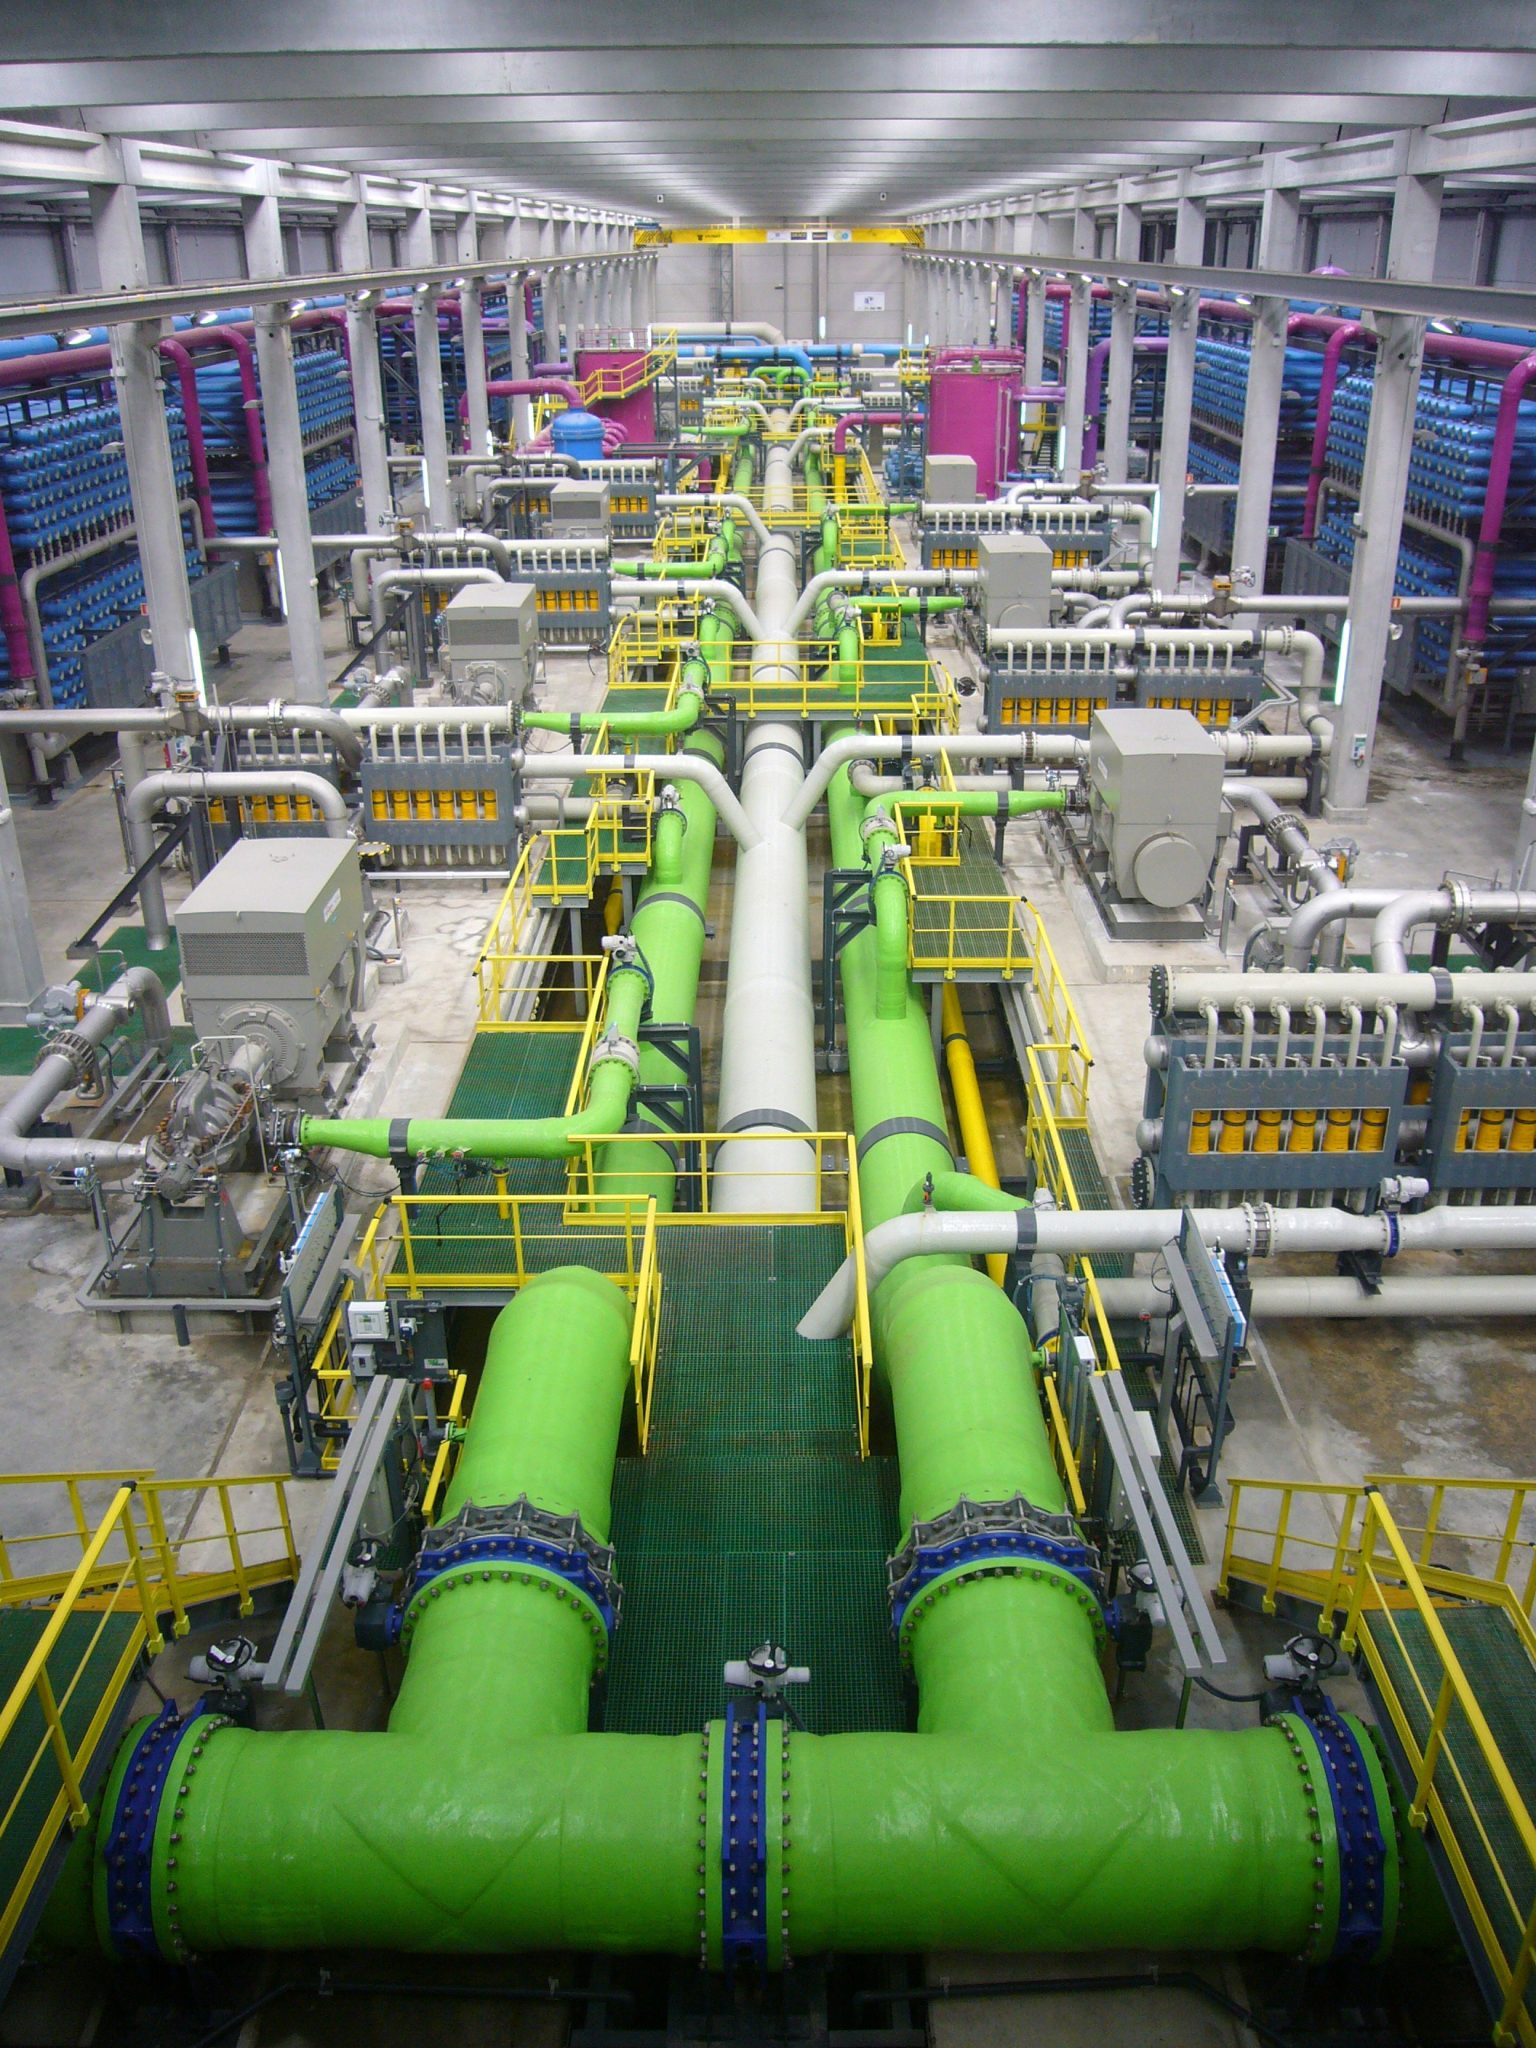 The Desalination Development Act will help fund desalination projects such as the one pictured here.